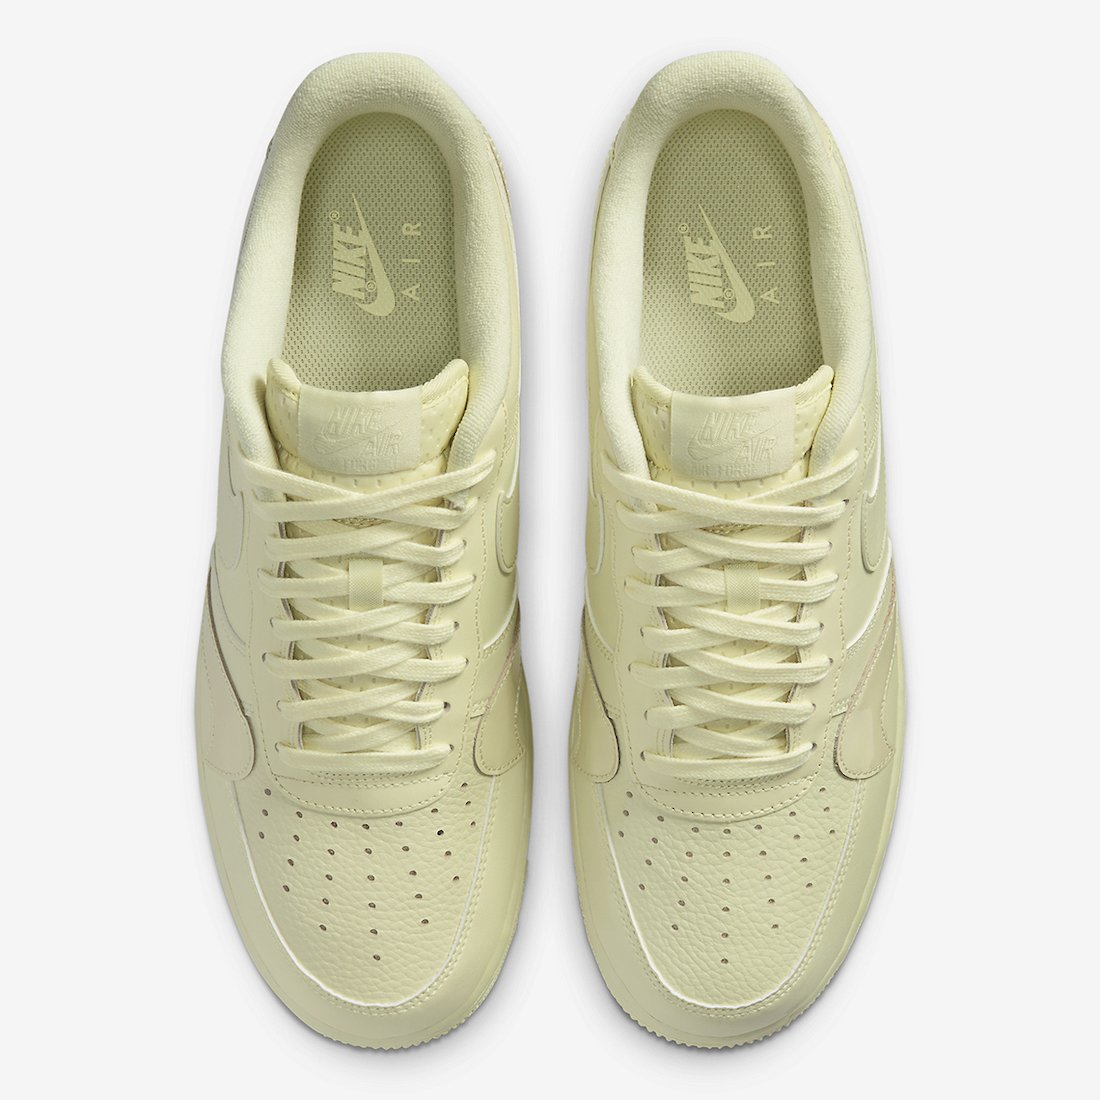 Nike Air Force 1 Misplaced Swoosh Pale Yellow CK7214-700 Release Date Info